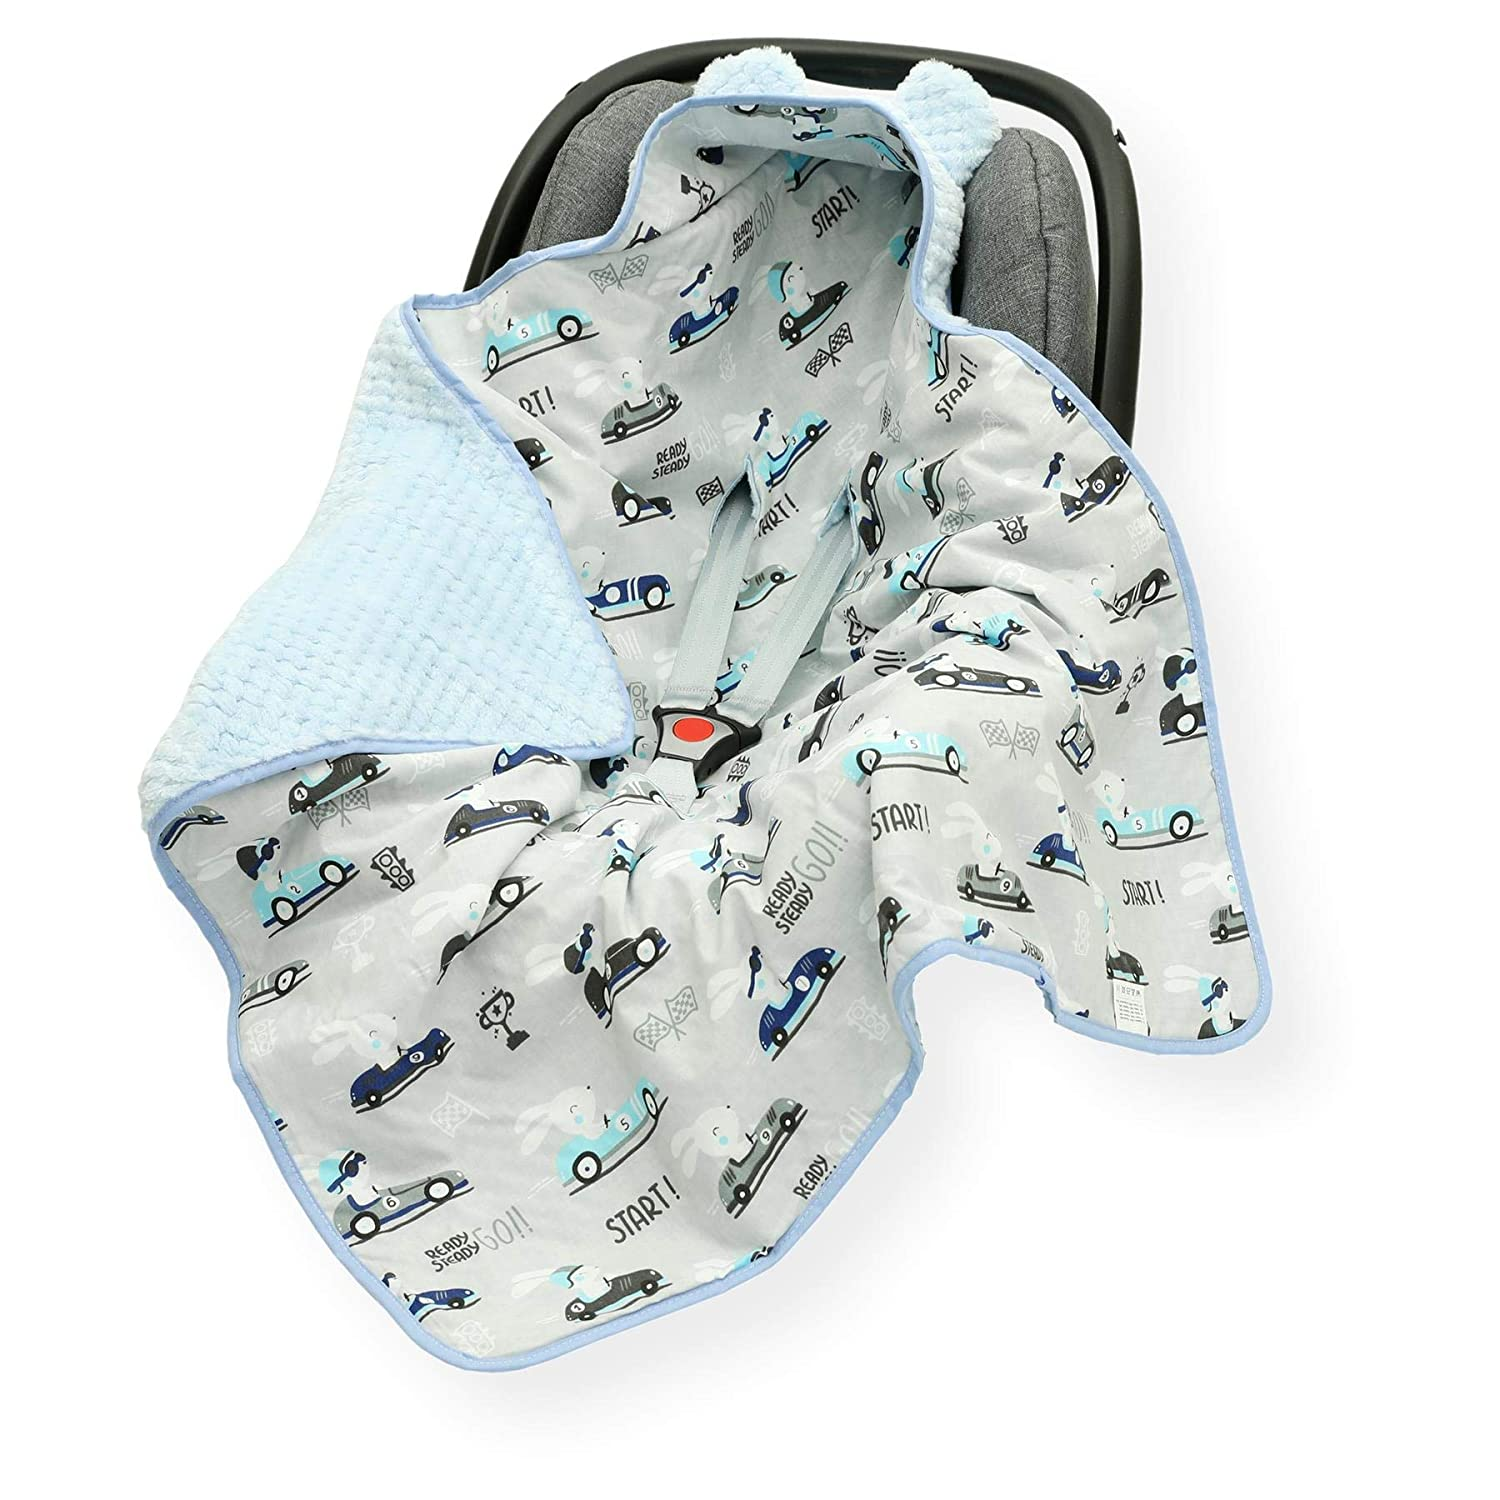 Cars//Blue CAR SEAT Baby Blanket//Footmuff//Cosy Toes//Cotton /& Waffle-Effect Mink Plush 80 x 80cm Dual Layer with Hood